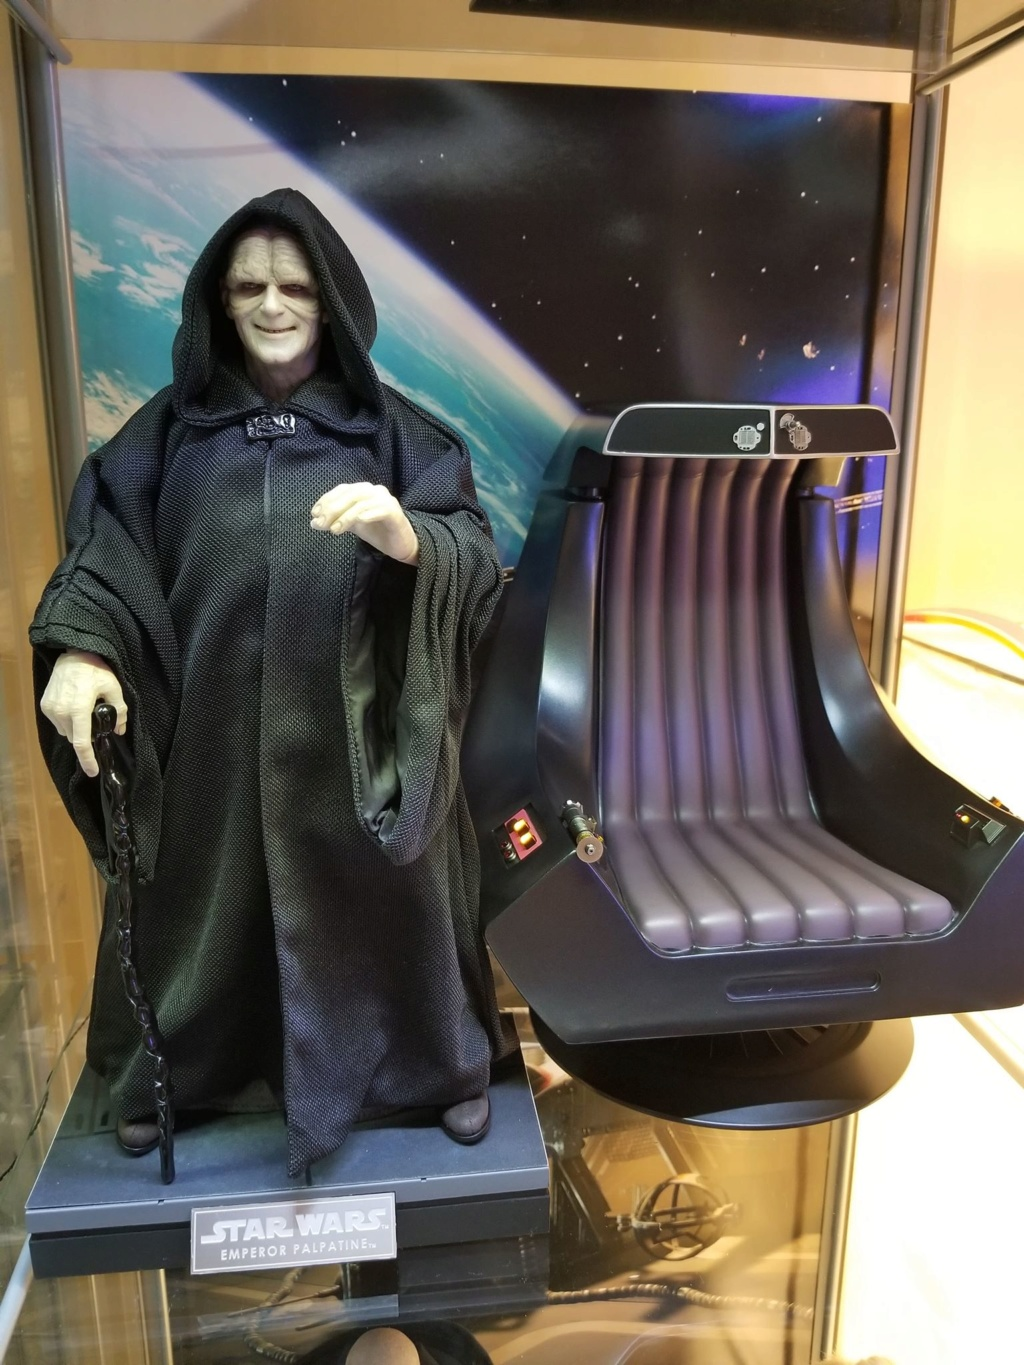 rotj - Hot Toys Star Wars Emperor Palpatine (Deluxe) Review - Page 2 48375710